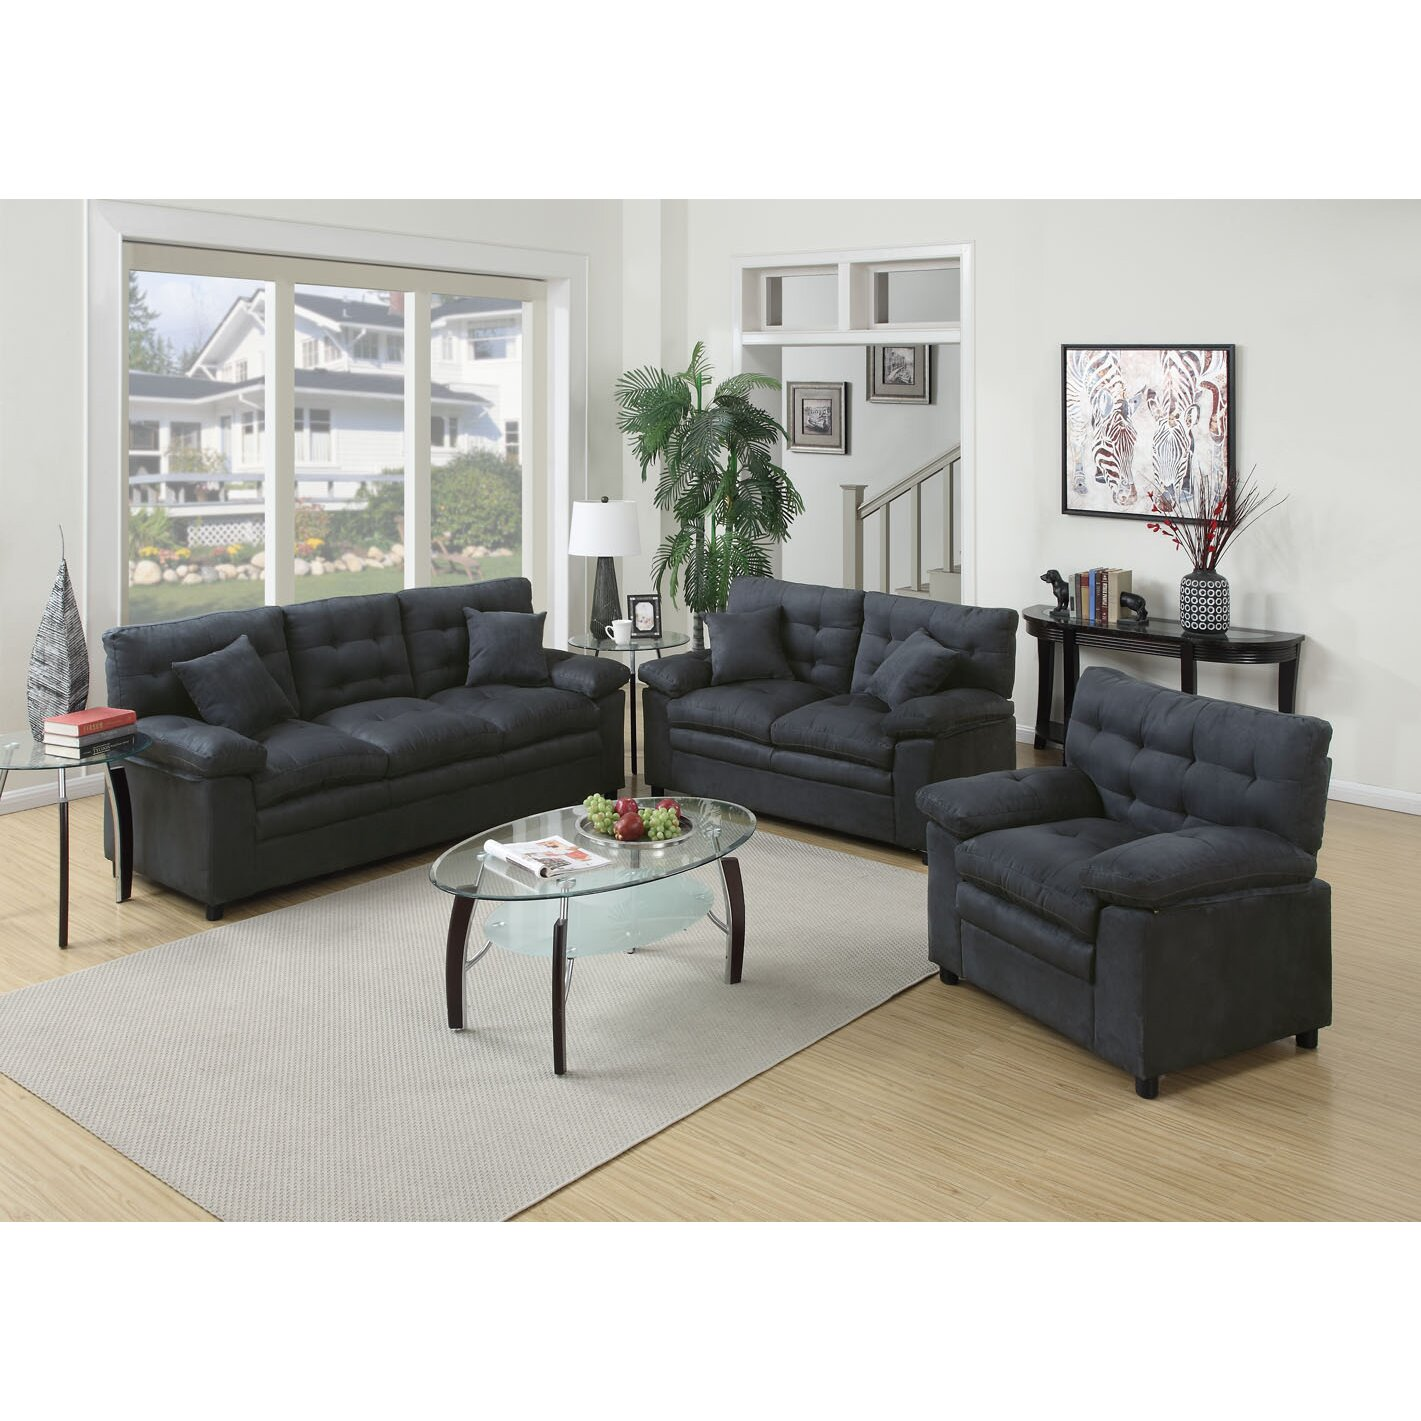 Poundex bobkona colona 3 piece living room set reviews wayfair - Living spaces living room sets ...